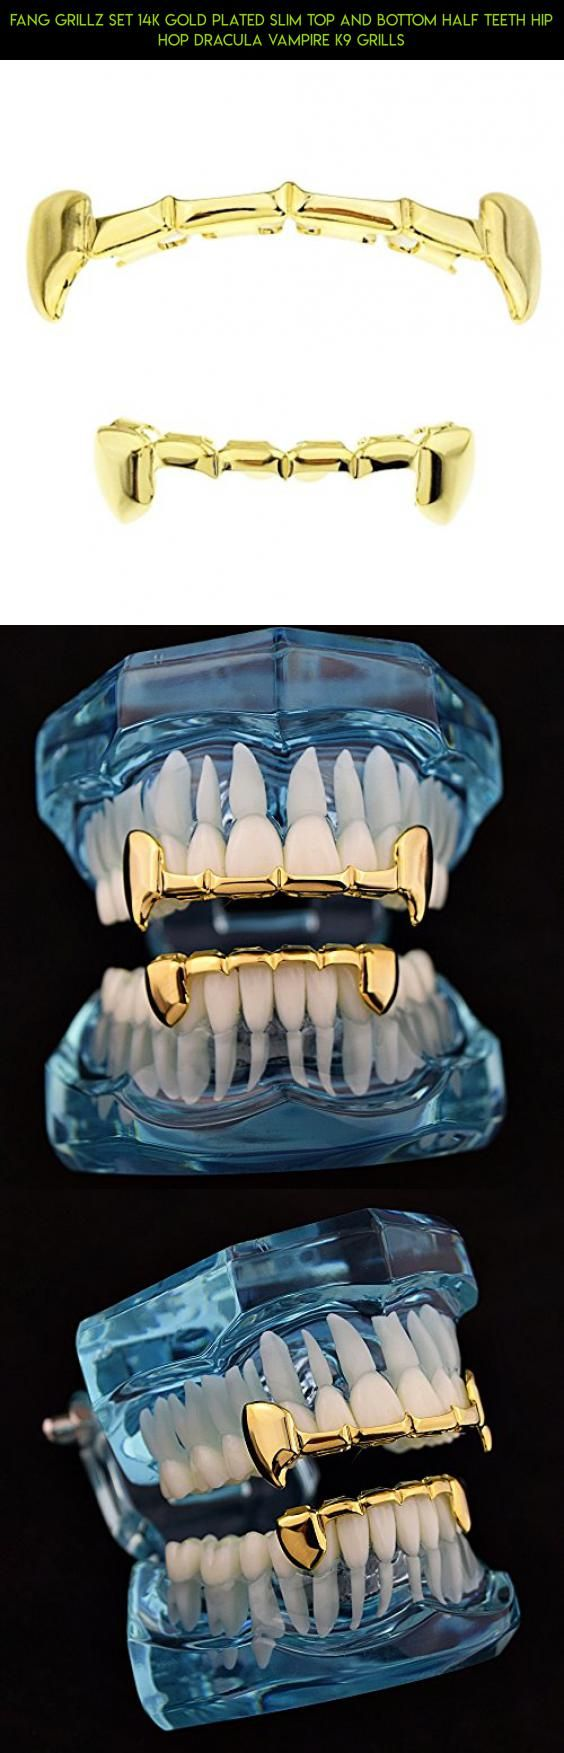 Fang Grillz Set 14k Gold Plated Slim Top And Bottom Half Teeth Hip Hop Dracula Vampire K9 Grills #fpv #tech #technology #kit #teeth #plans #racing #gadgets #camera #your #products #bottom #grills #shopping #for #drone #parts